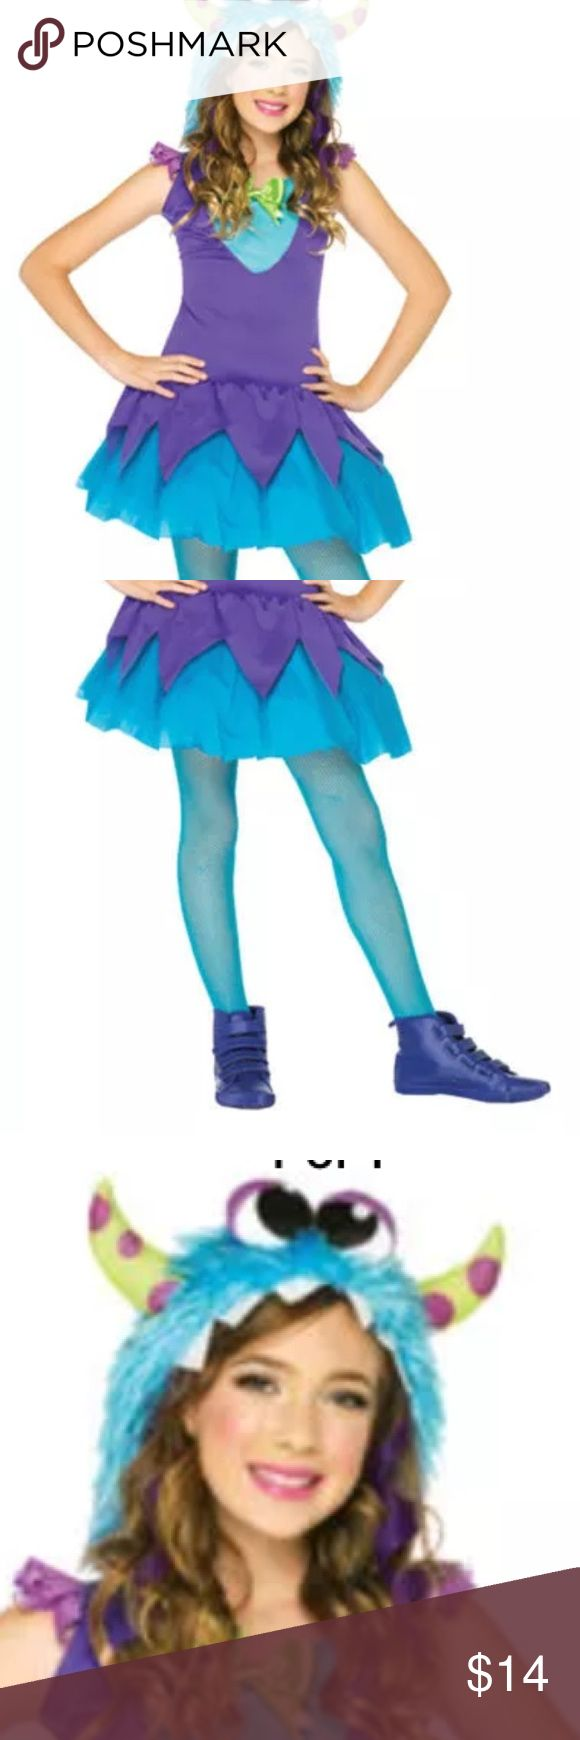 Cross Eyed Carlie Monster Inc  Small Size 4-6 Cross Eyed Carlie Girls Costume   The Enchanted Costumes Collection by Leg Avenue  features a purple and neon blue dress with layered skirt and attached neon blue furry monster hood with lime green and purple polka dot  horns.  Size s/p 4-6  Worn one time  Two pieces   EUC Leg Avenue Costumes